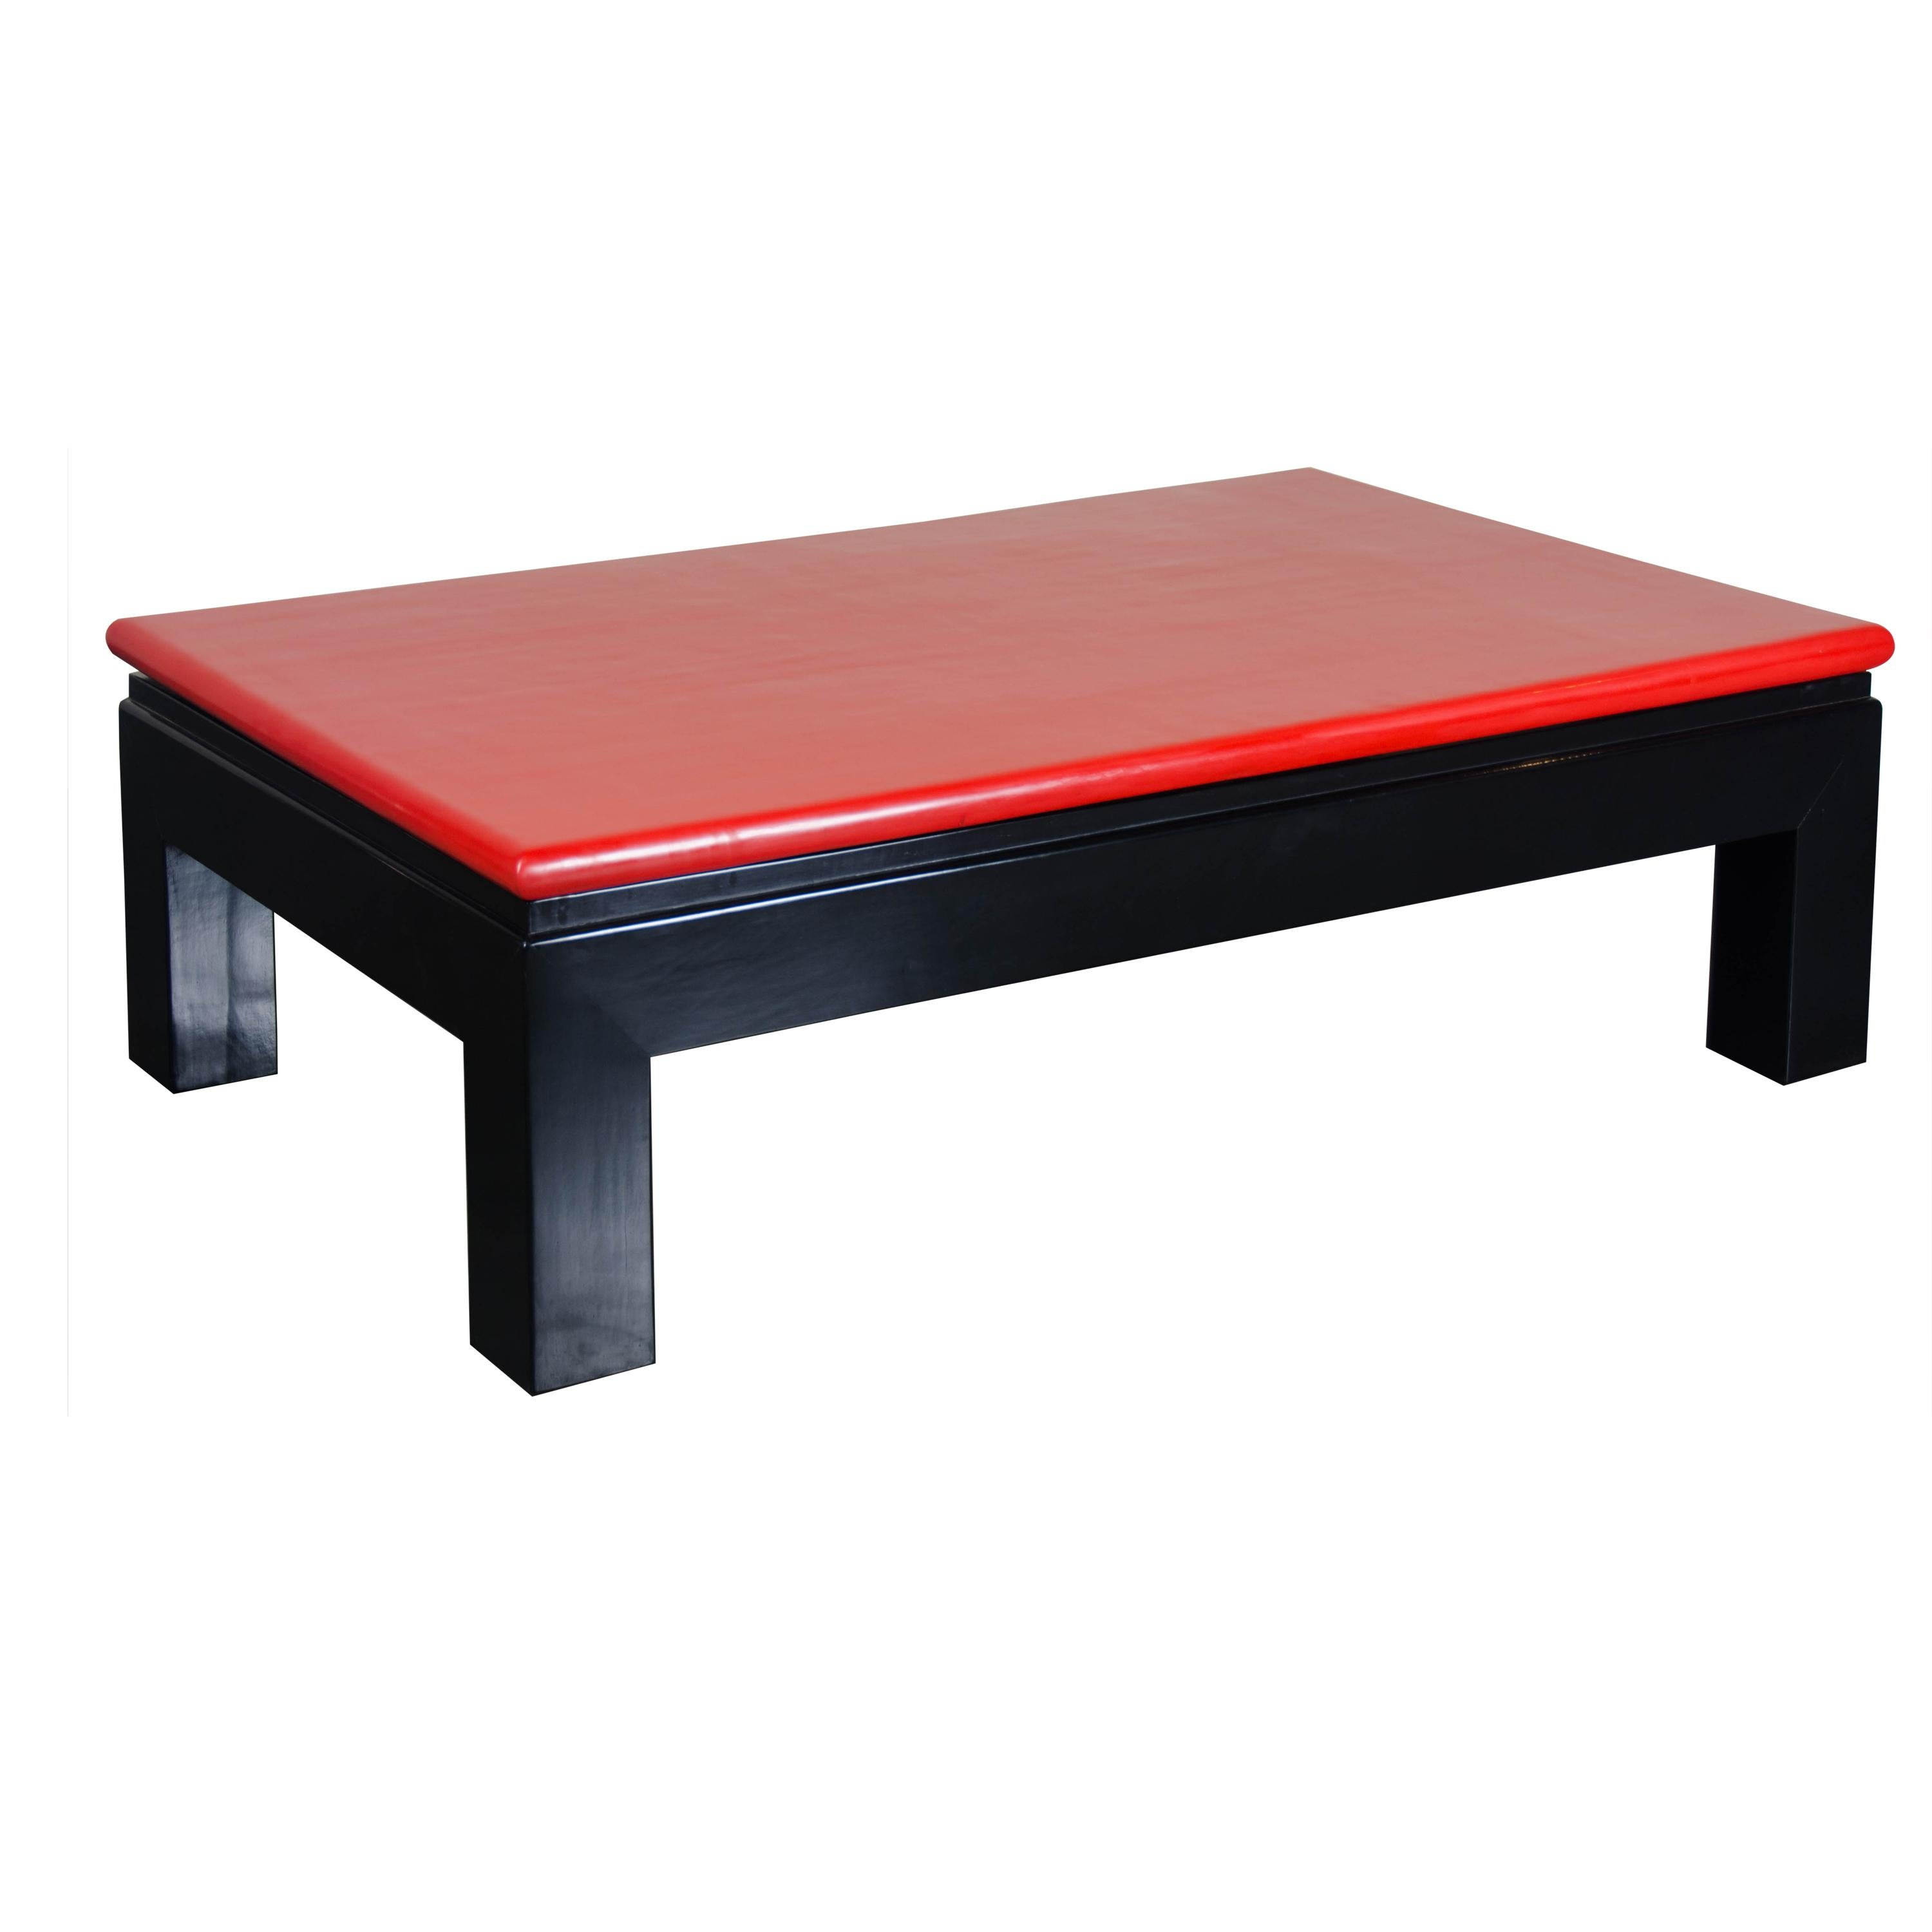 Ming Coffee Table, Red Lacquer by Robert Kuo, Handmade, Limited Edition